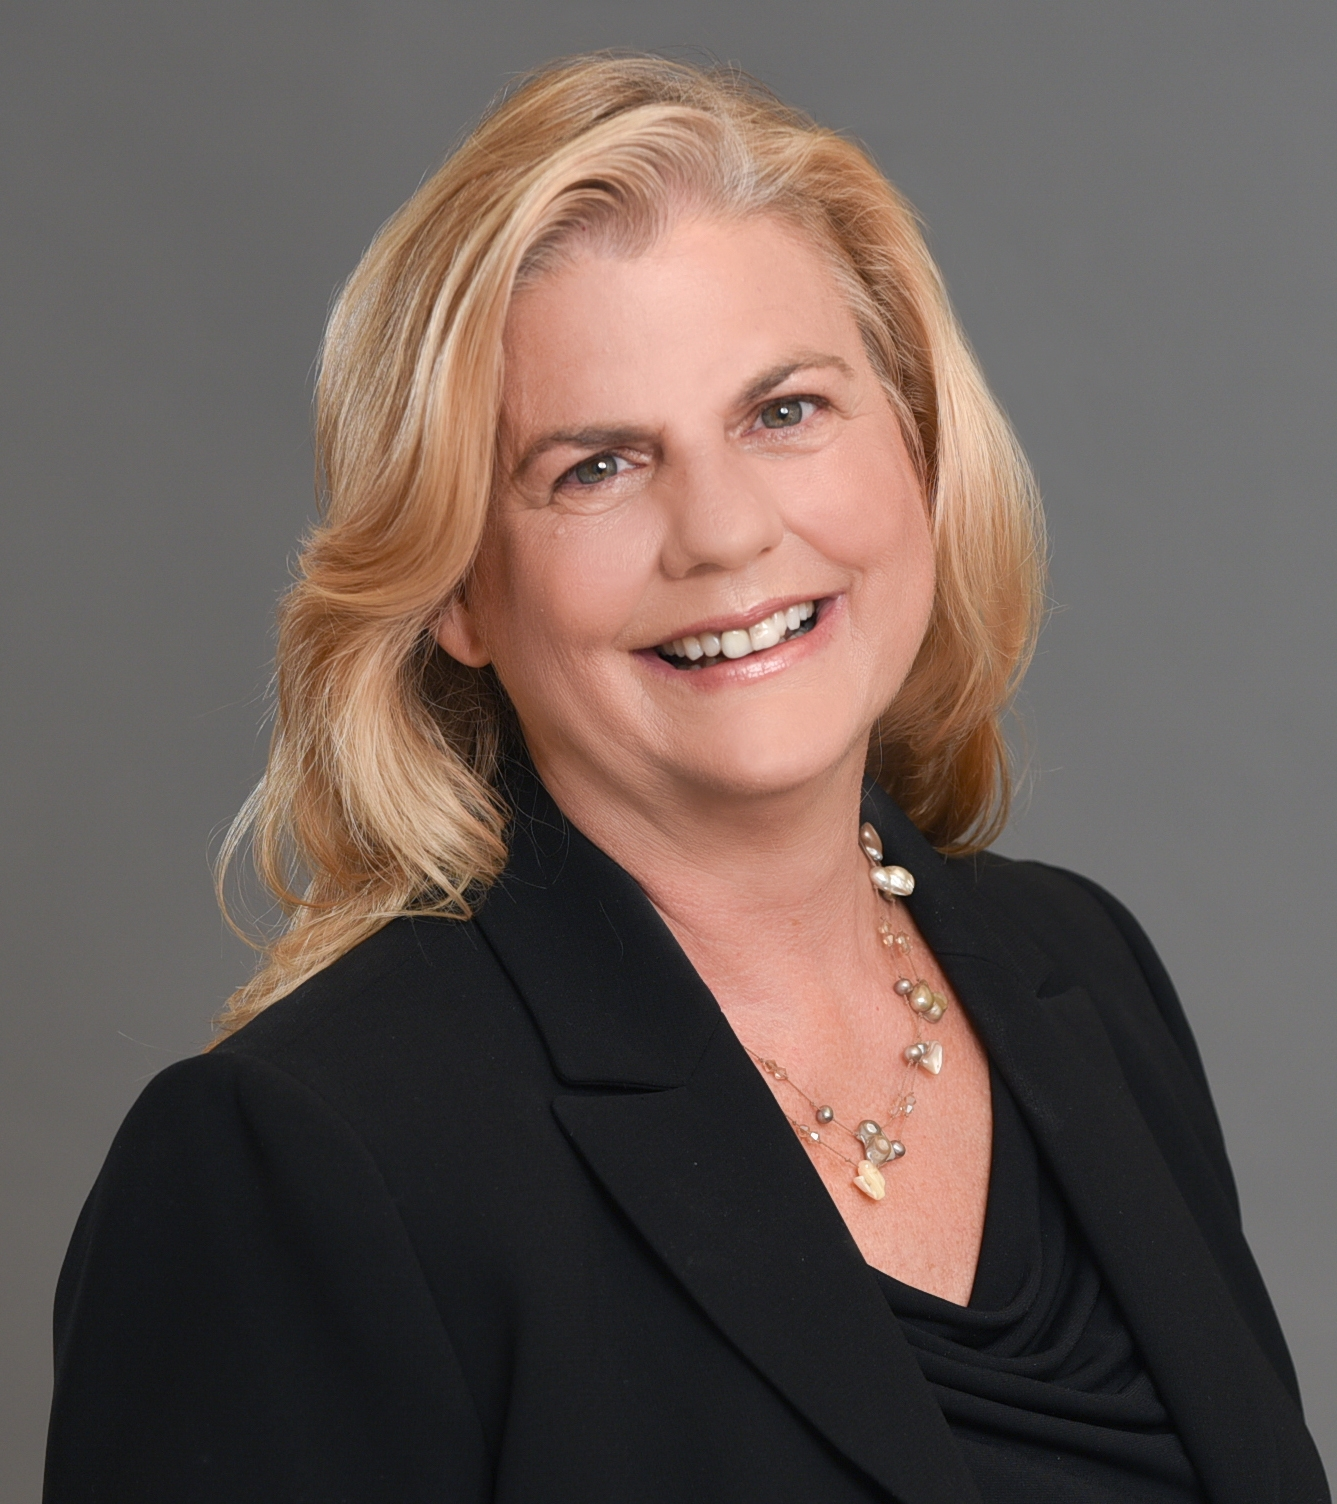 Headshot of Eileen Pansano, Director of Internal Audits